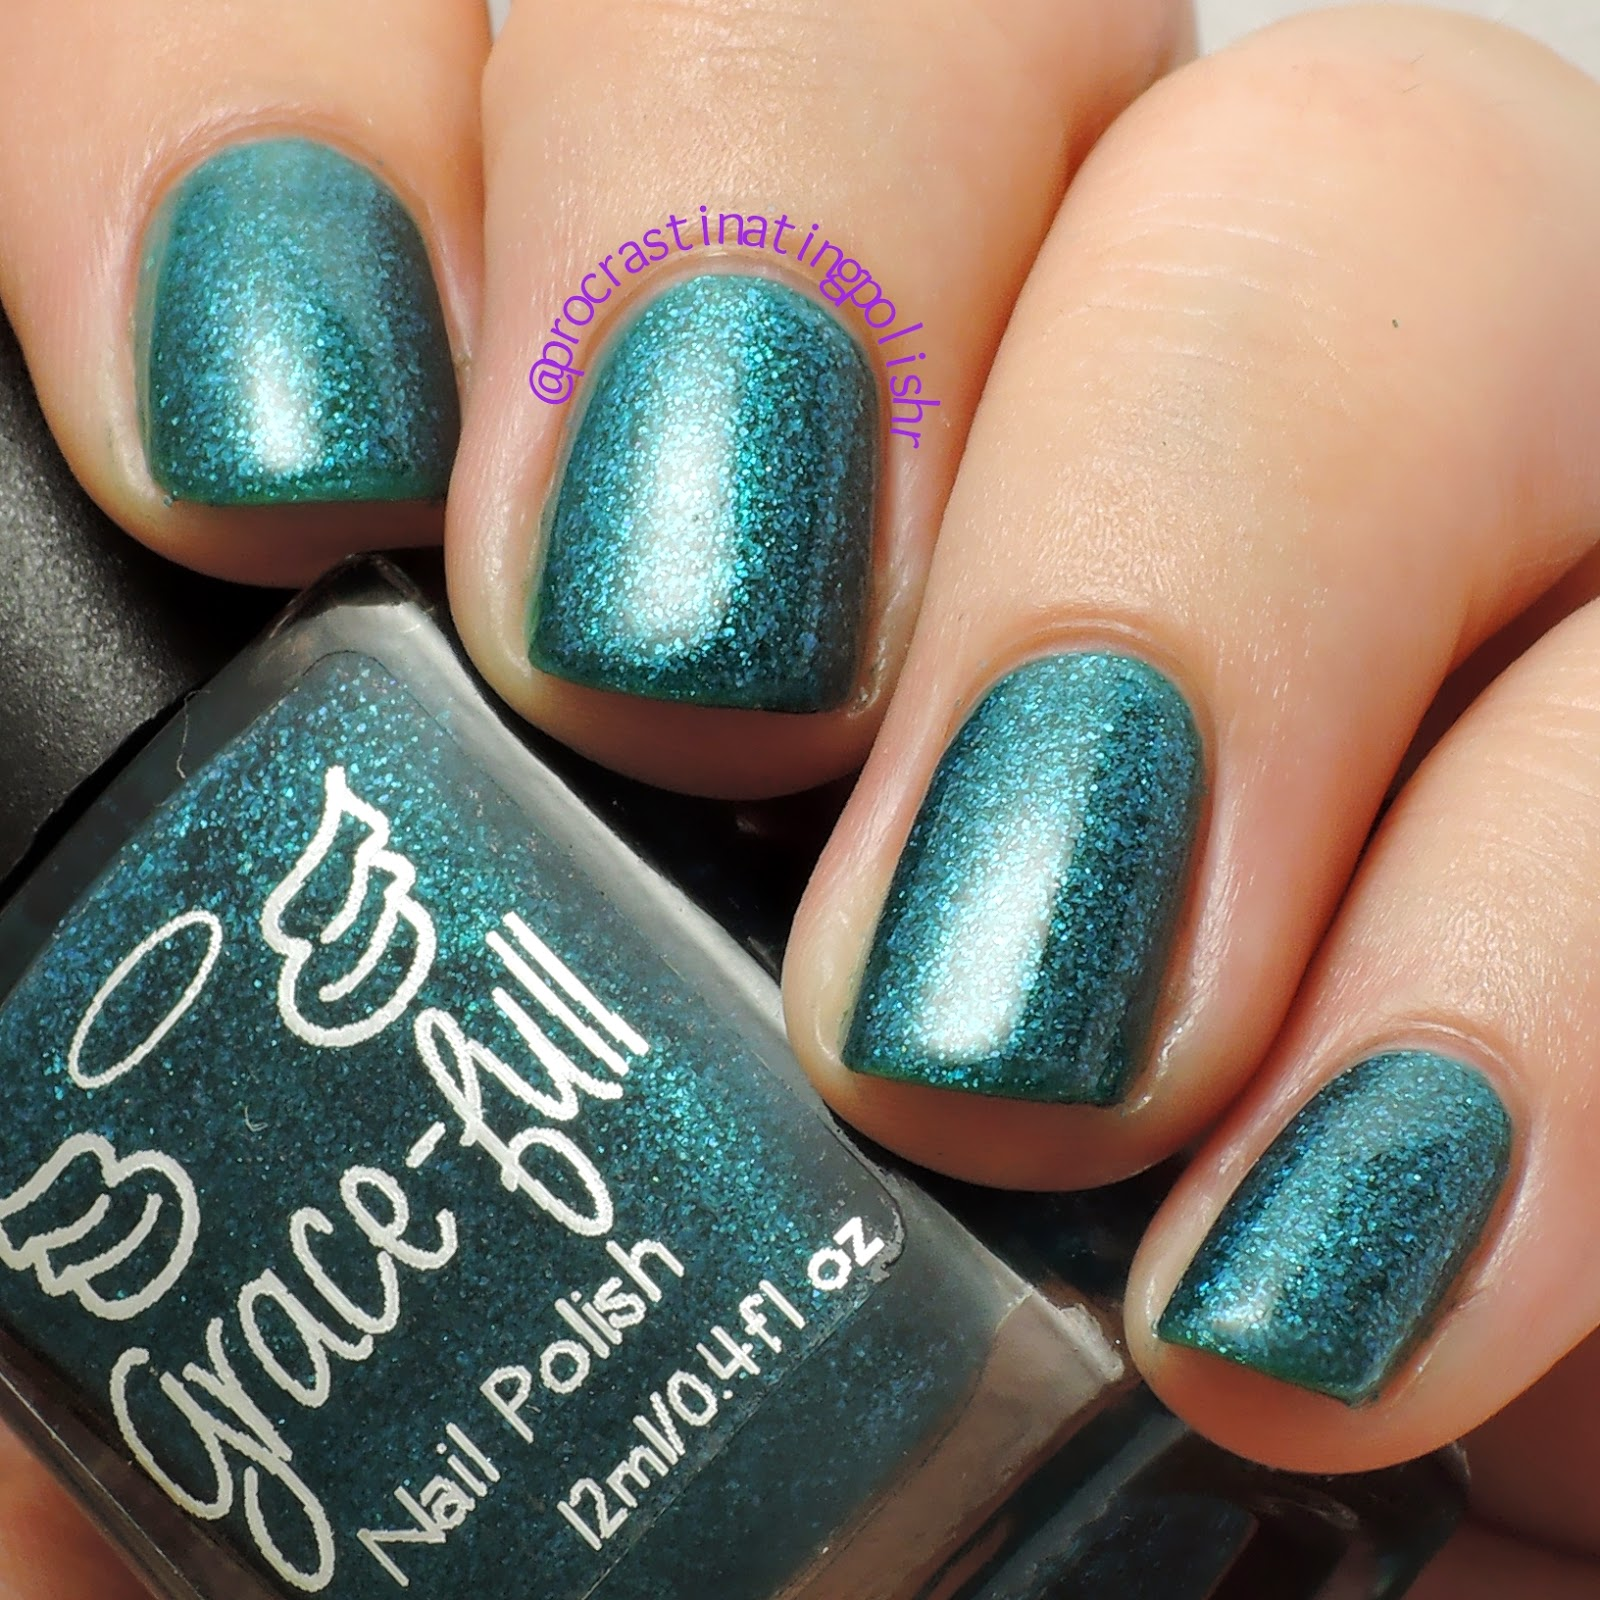 Grace-full Nail Polish - Christine